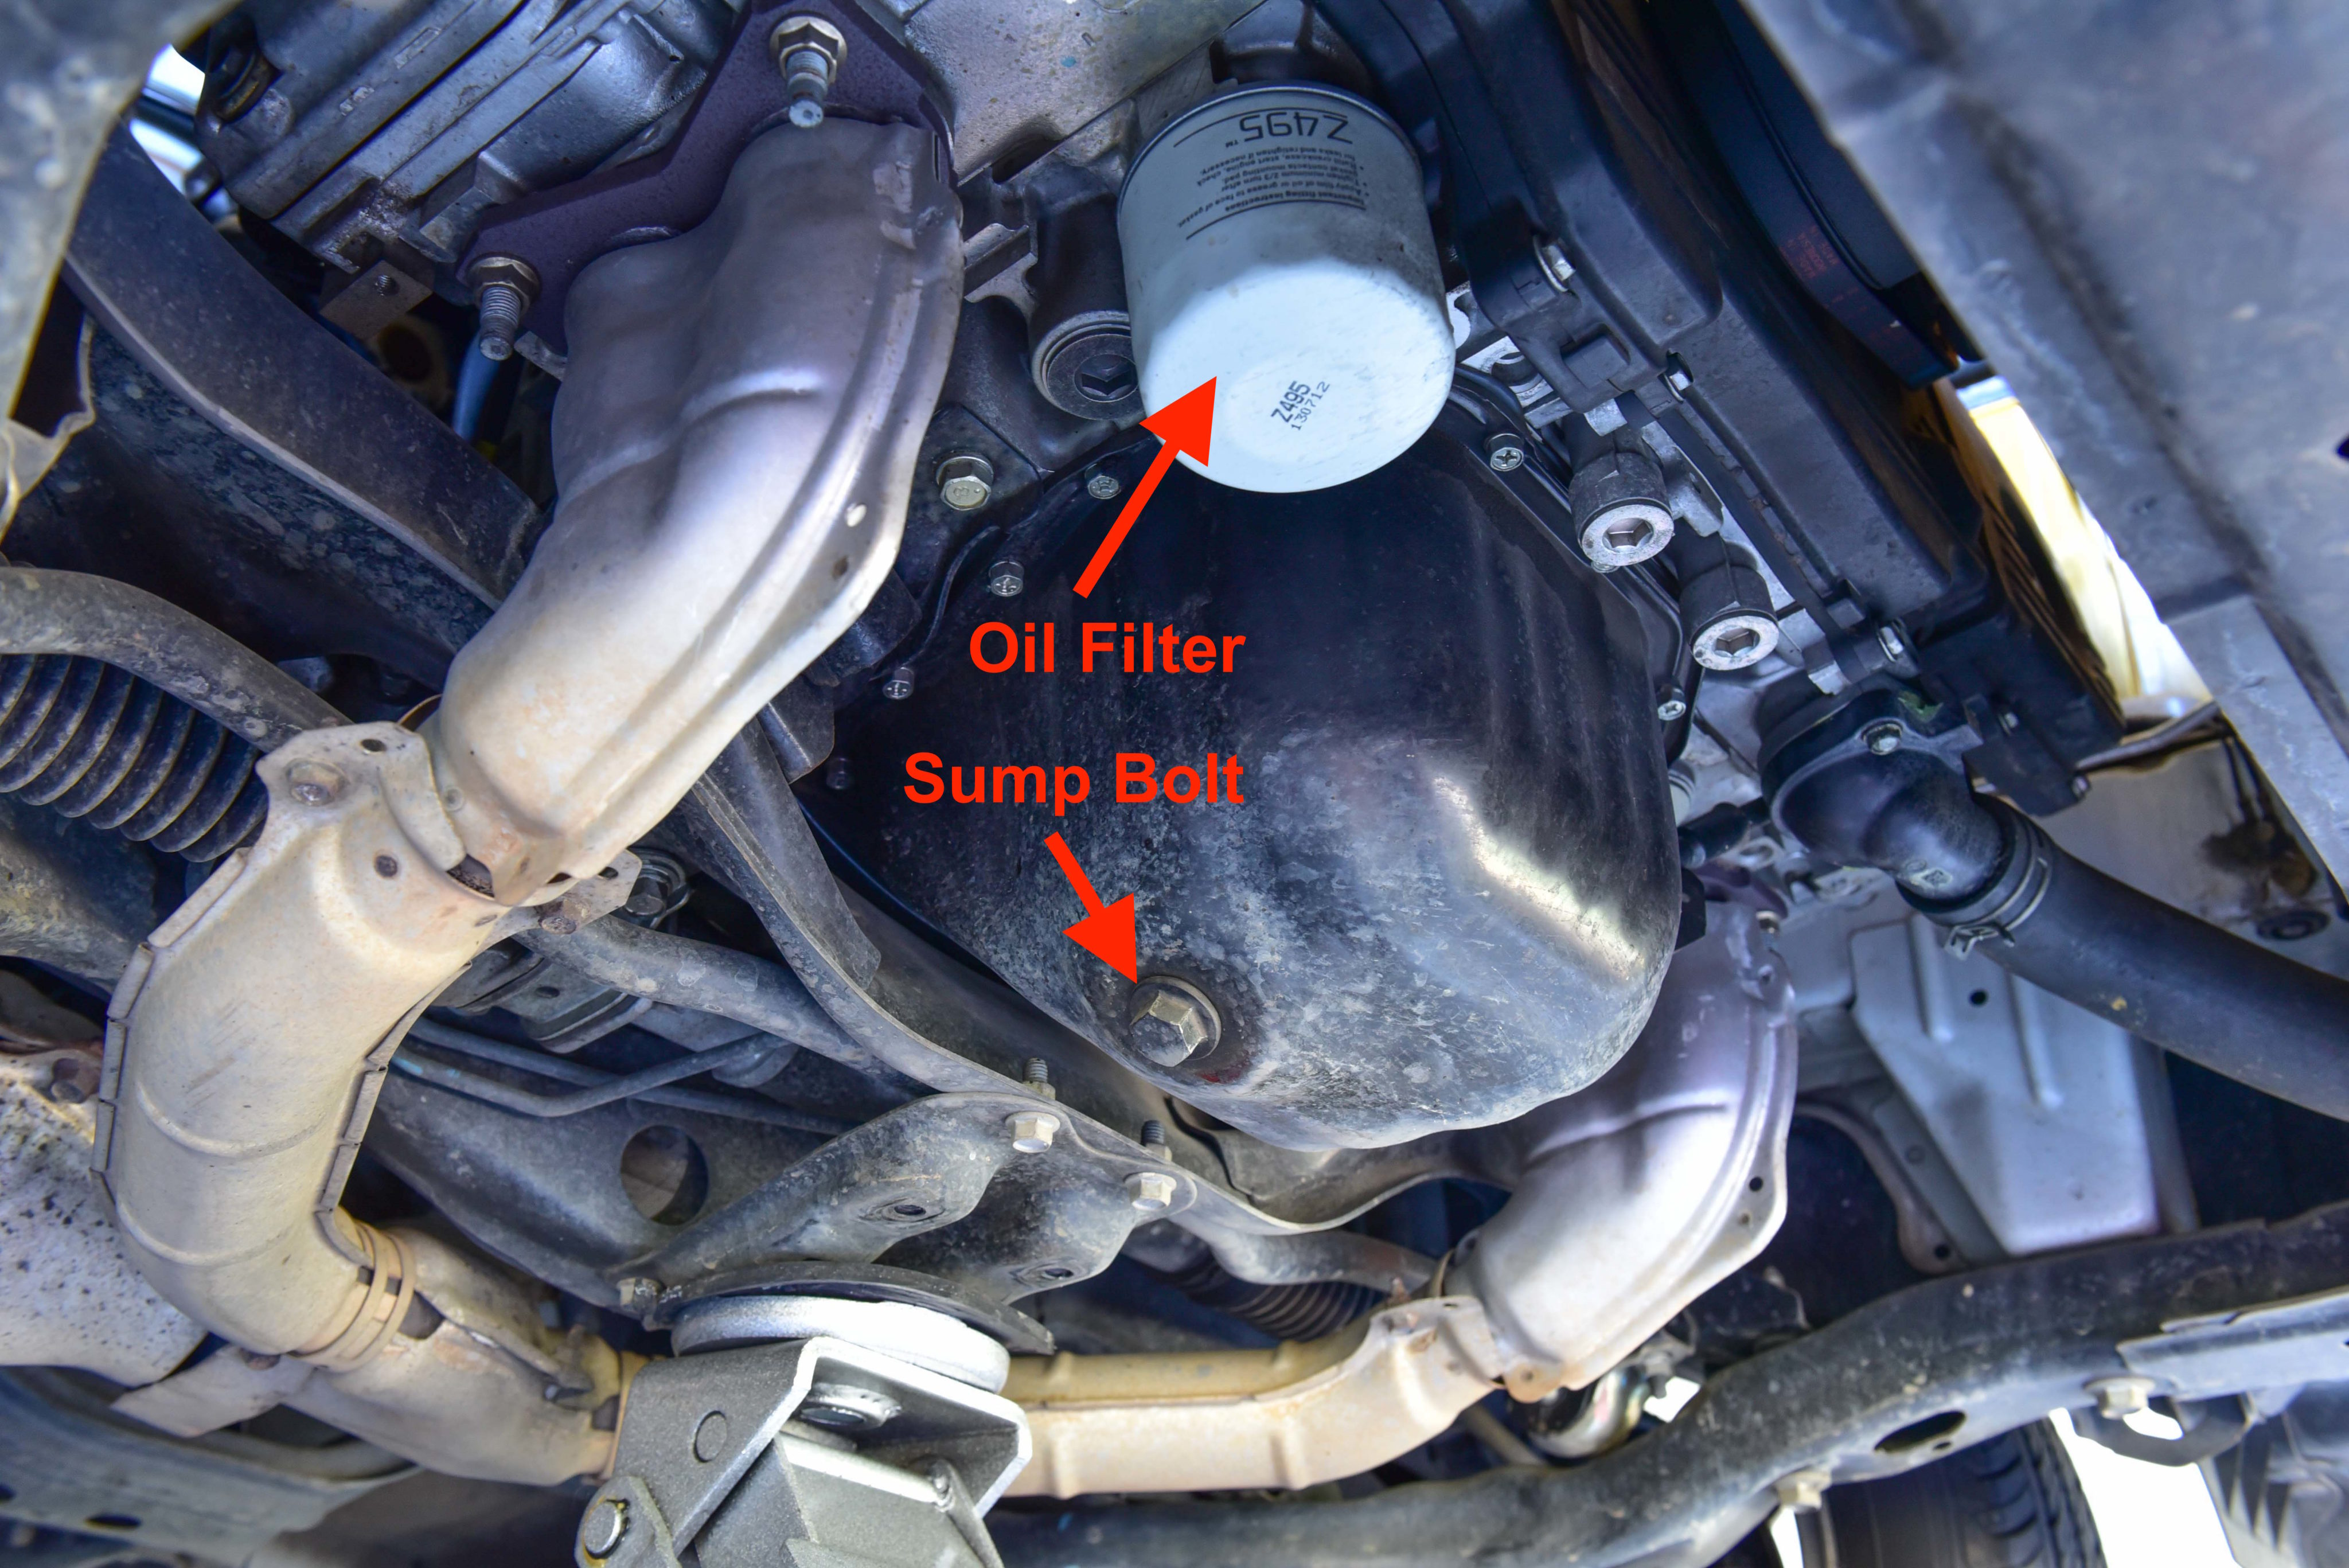 EJ201 Engine Oil Change – Subaru Impreza – AutoInstruct